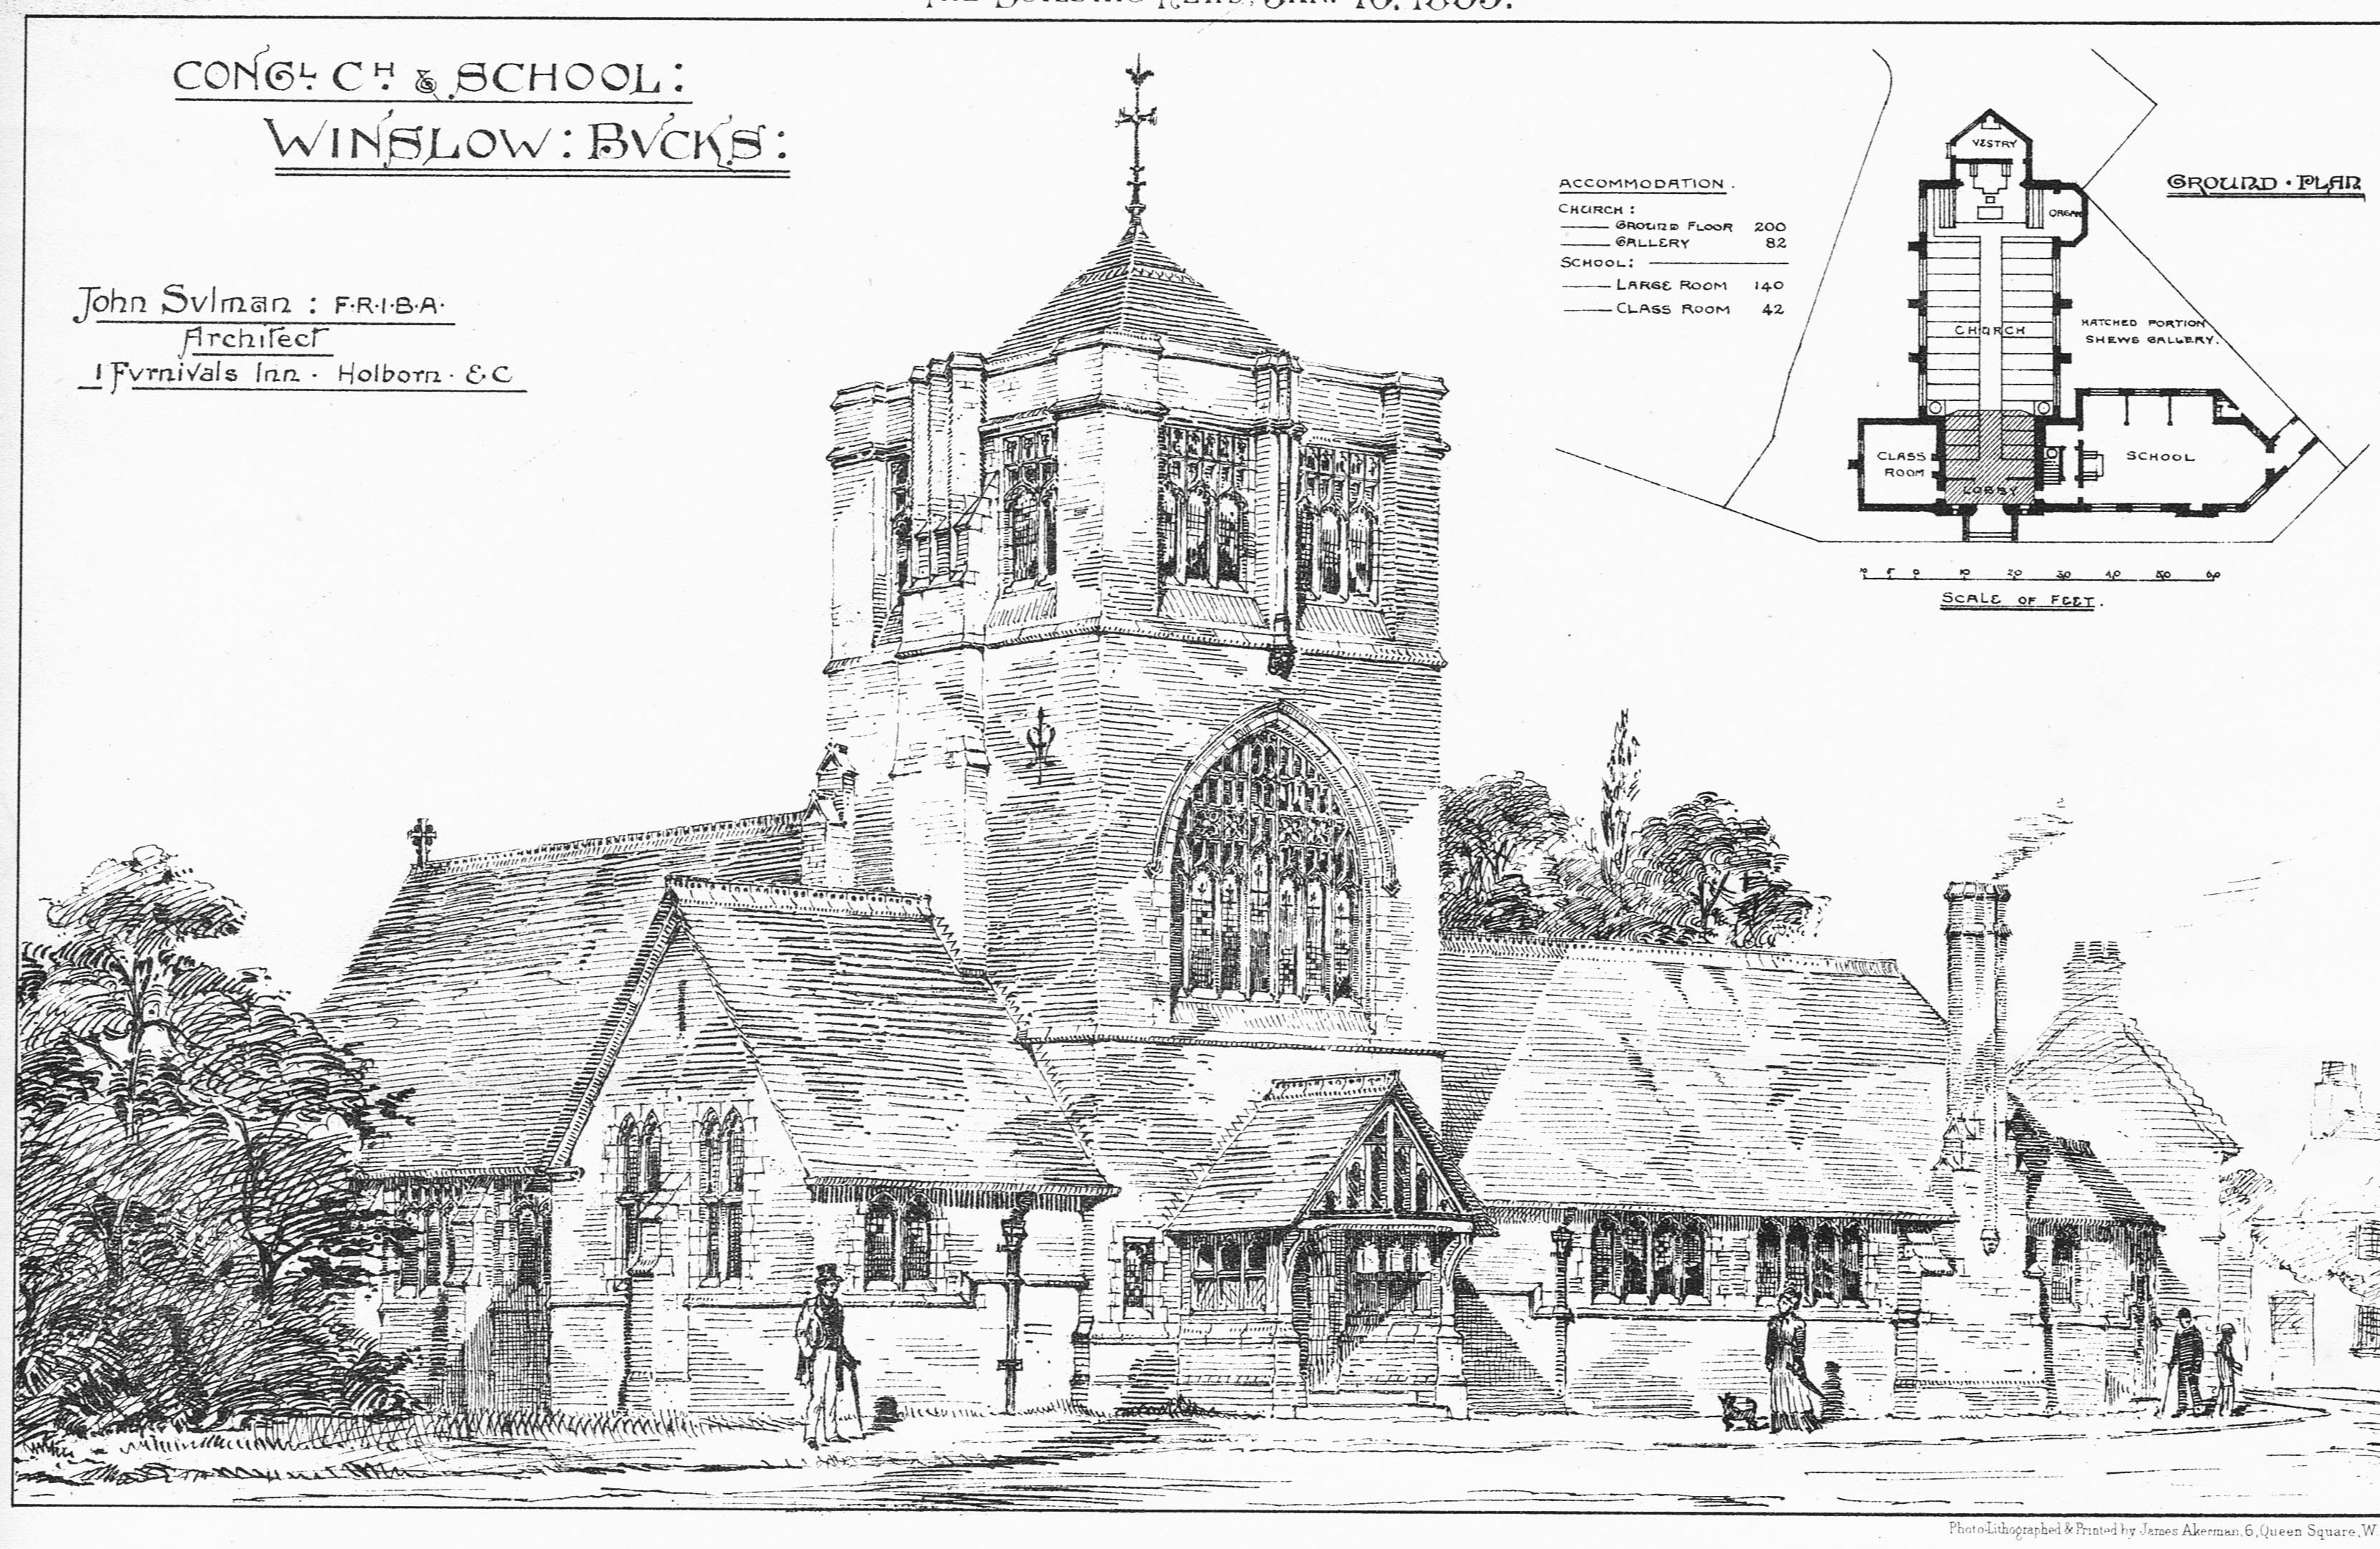 Drawing and plan of the Congregational Church